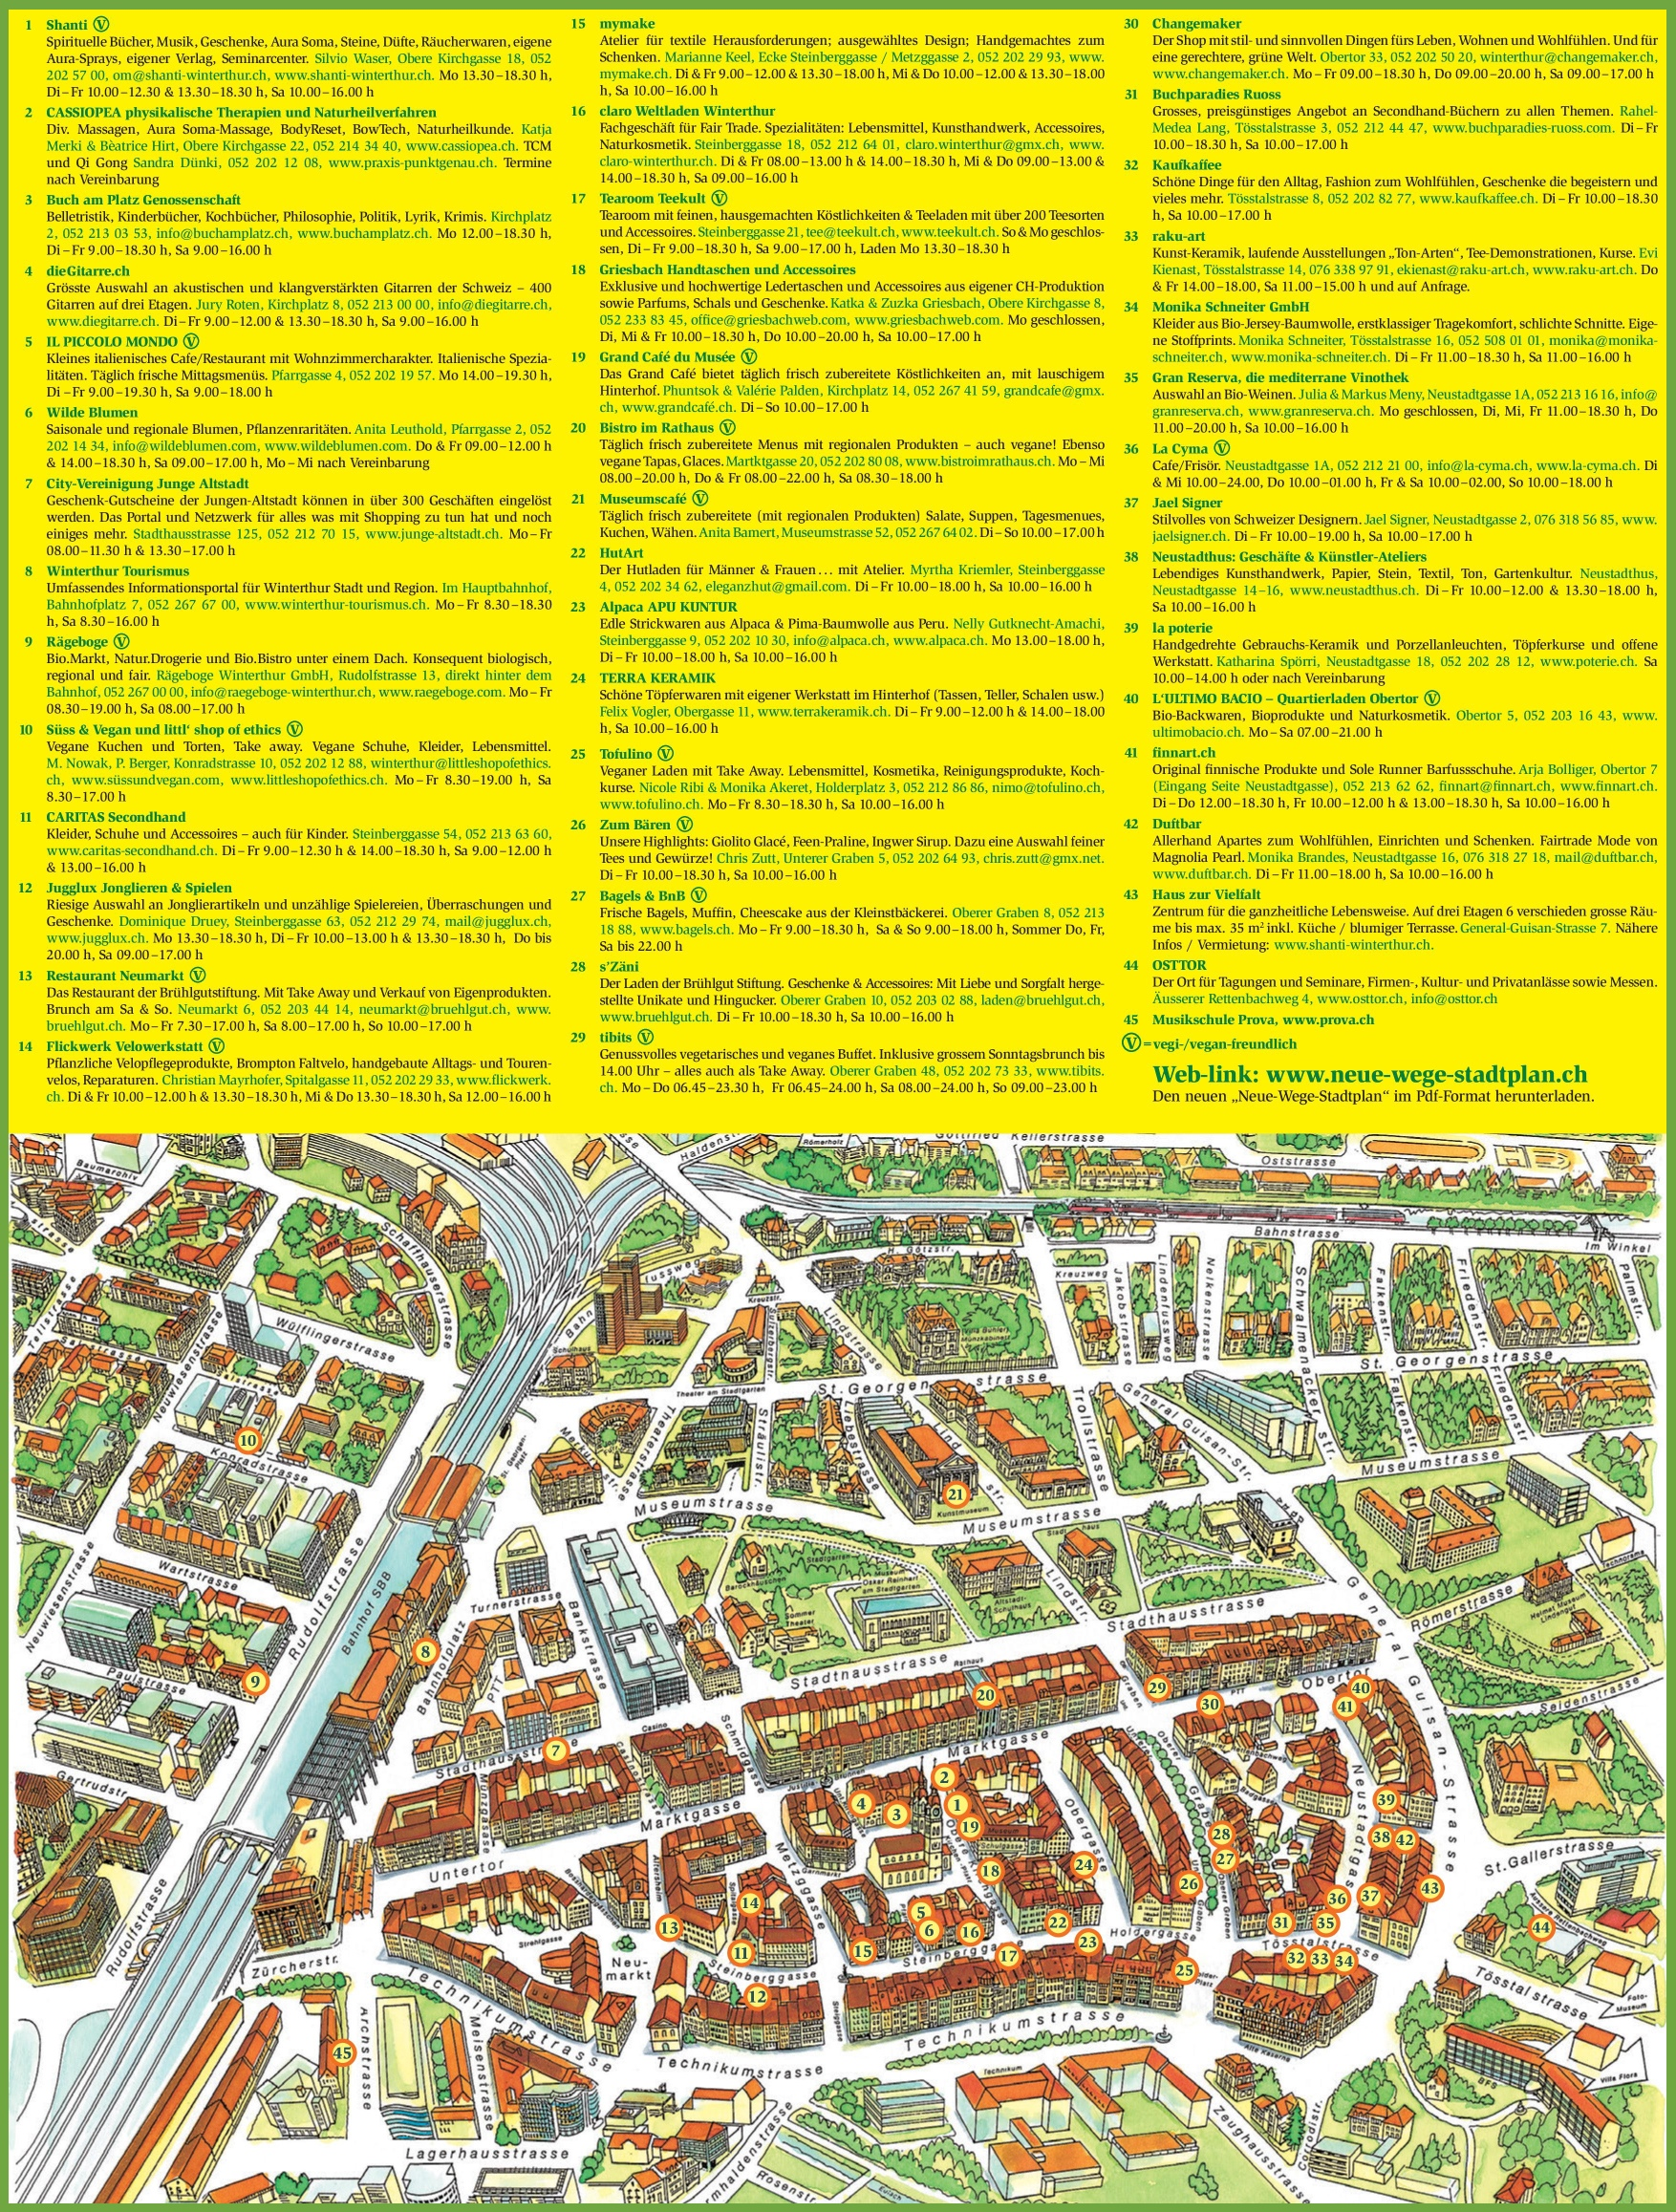 Winterthur city center map